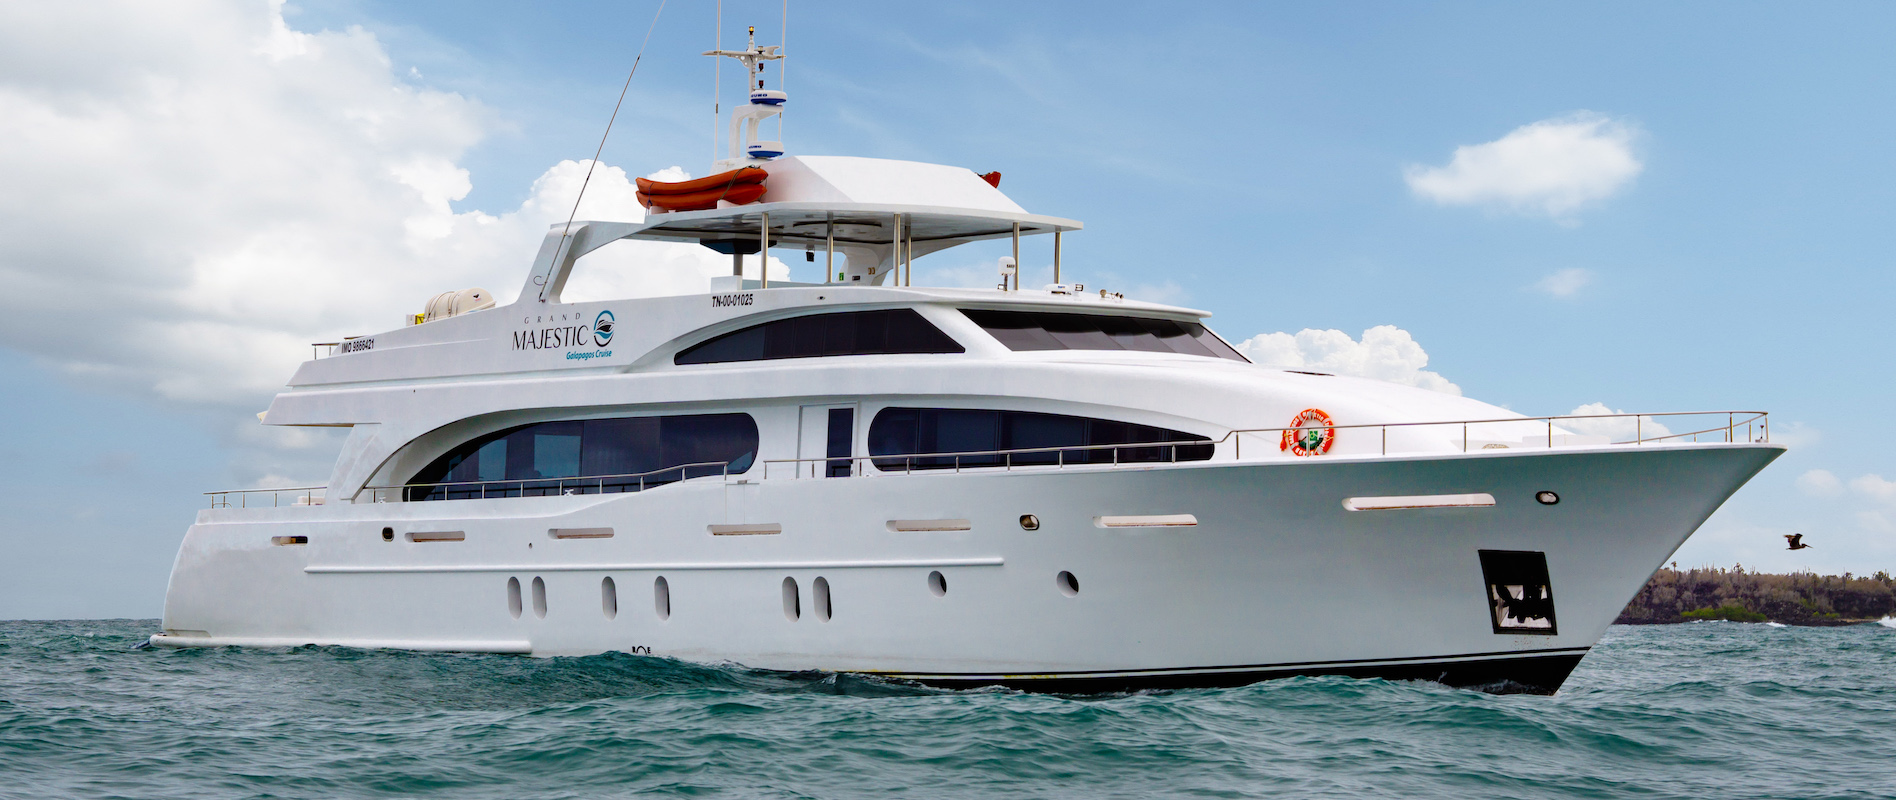 M/Y Grand Majestic Galapagos Yacht